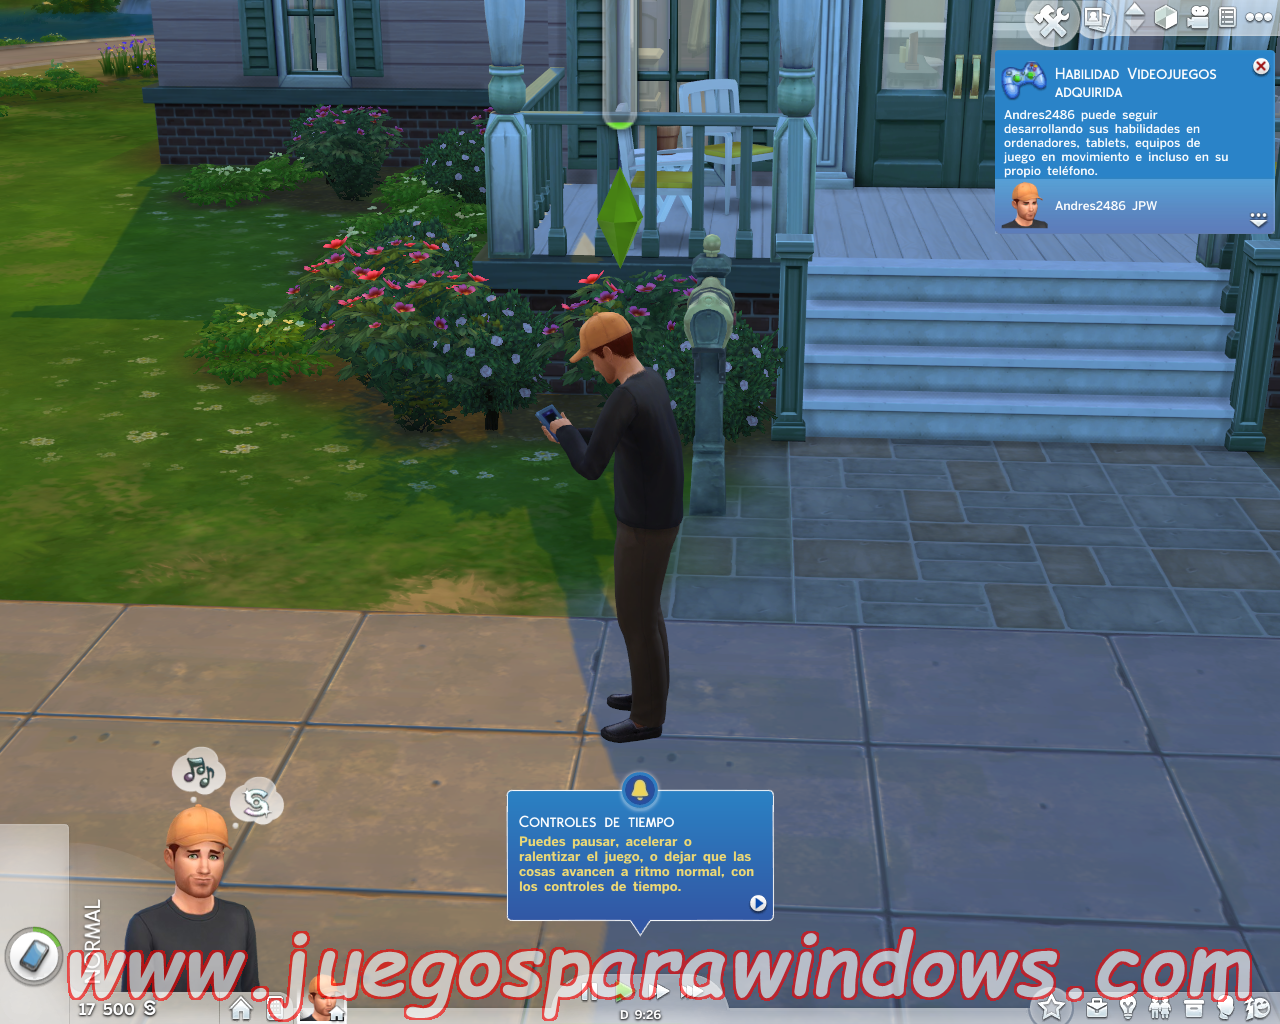 Los Sims 4 Digital Deluxe Edition ESPAÑOL PC Full + Update v1.4.83.1010 Incl DLC (RELOADED) 19